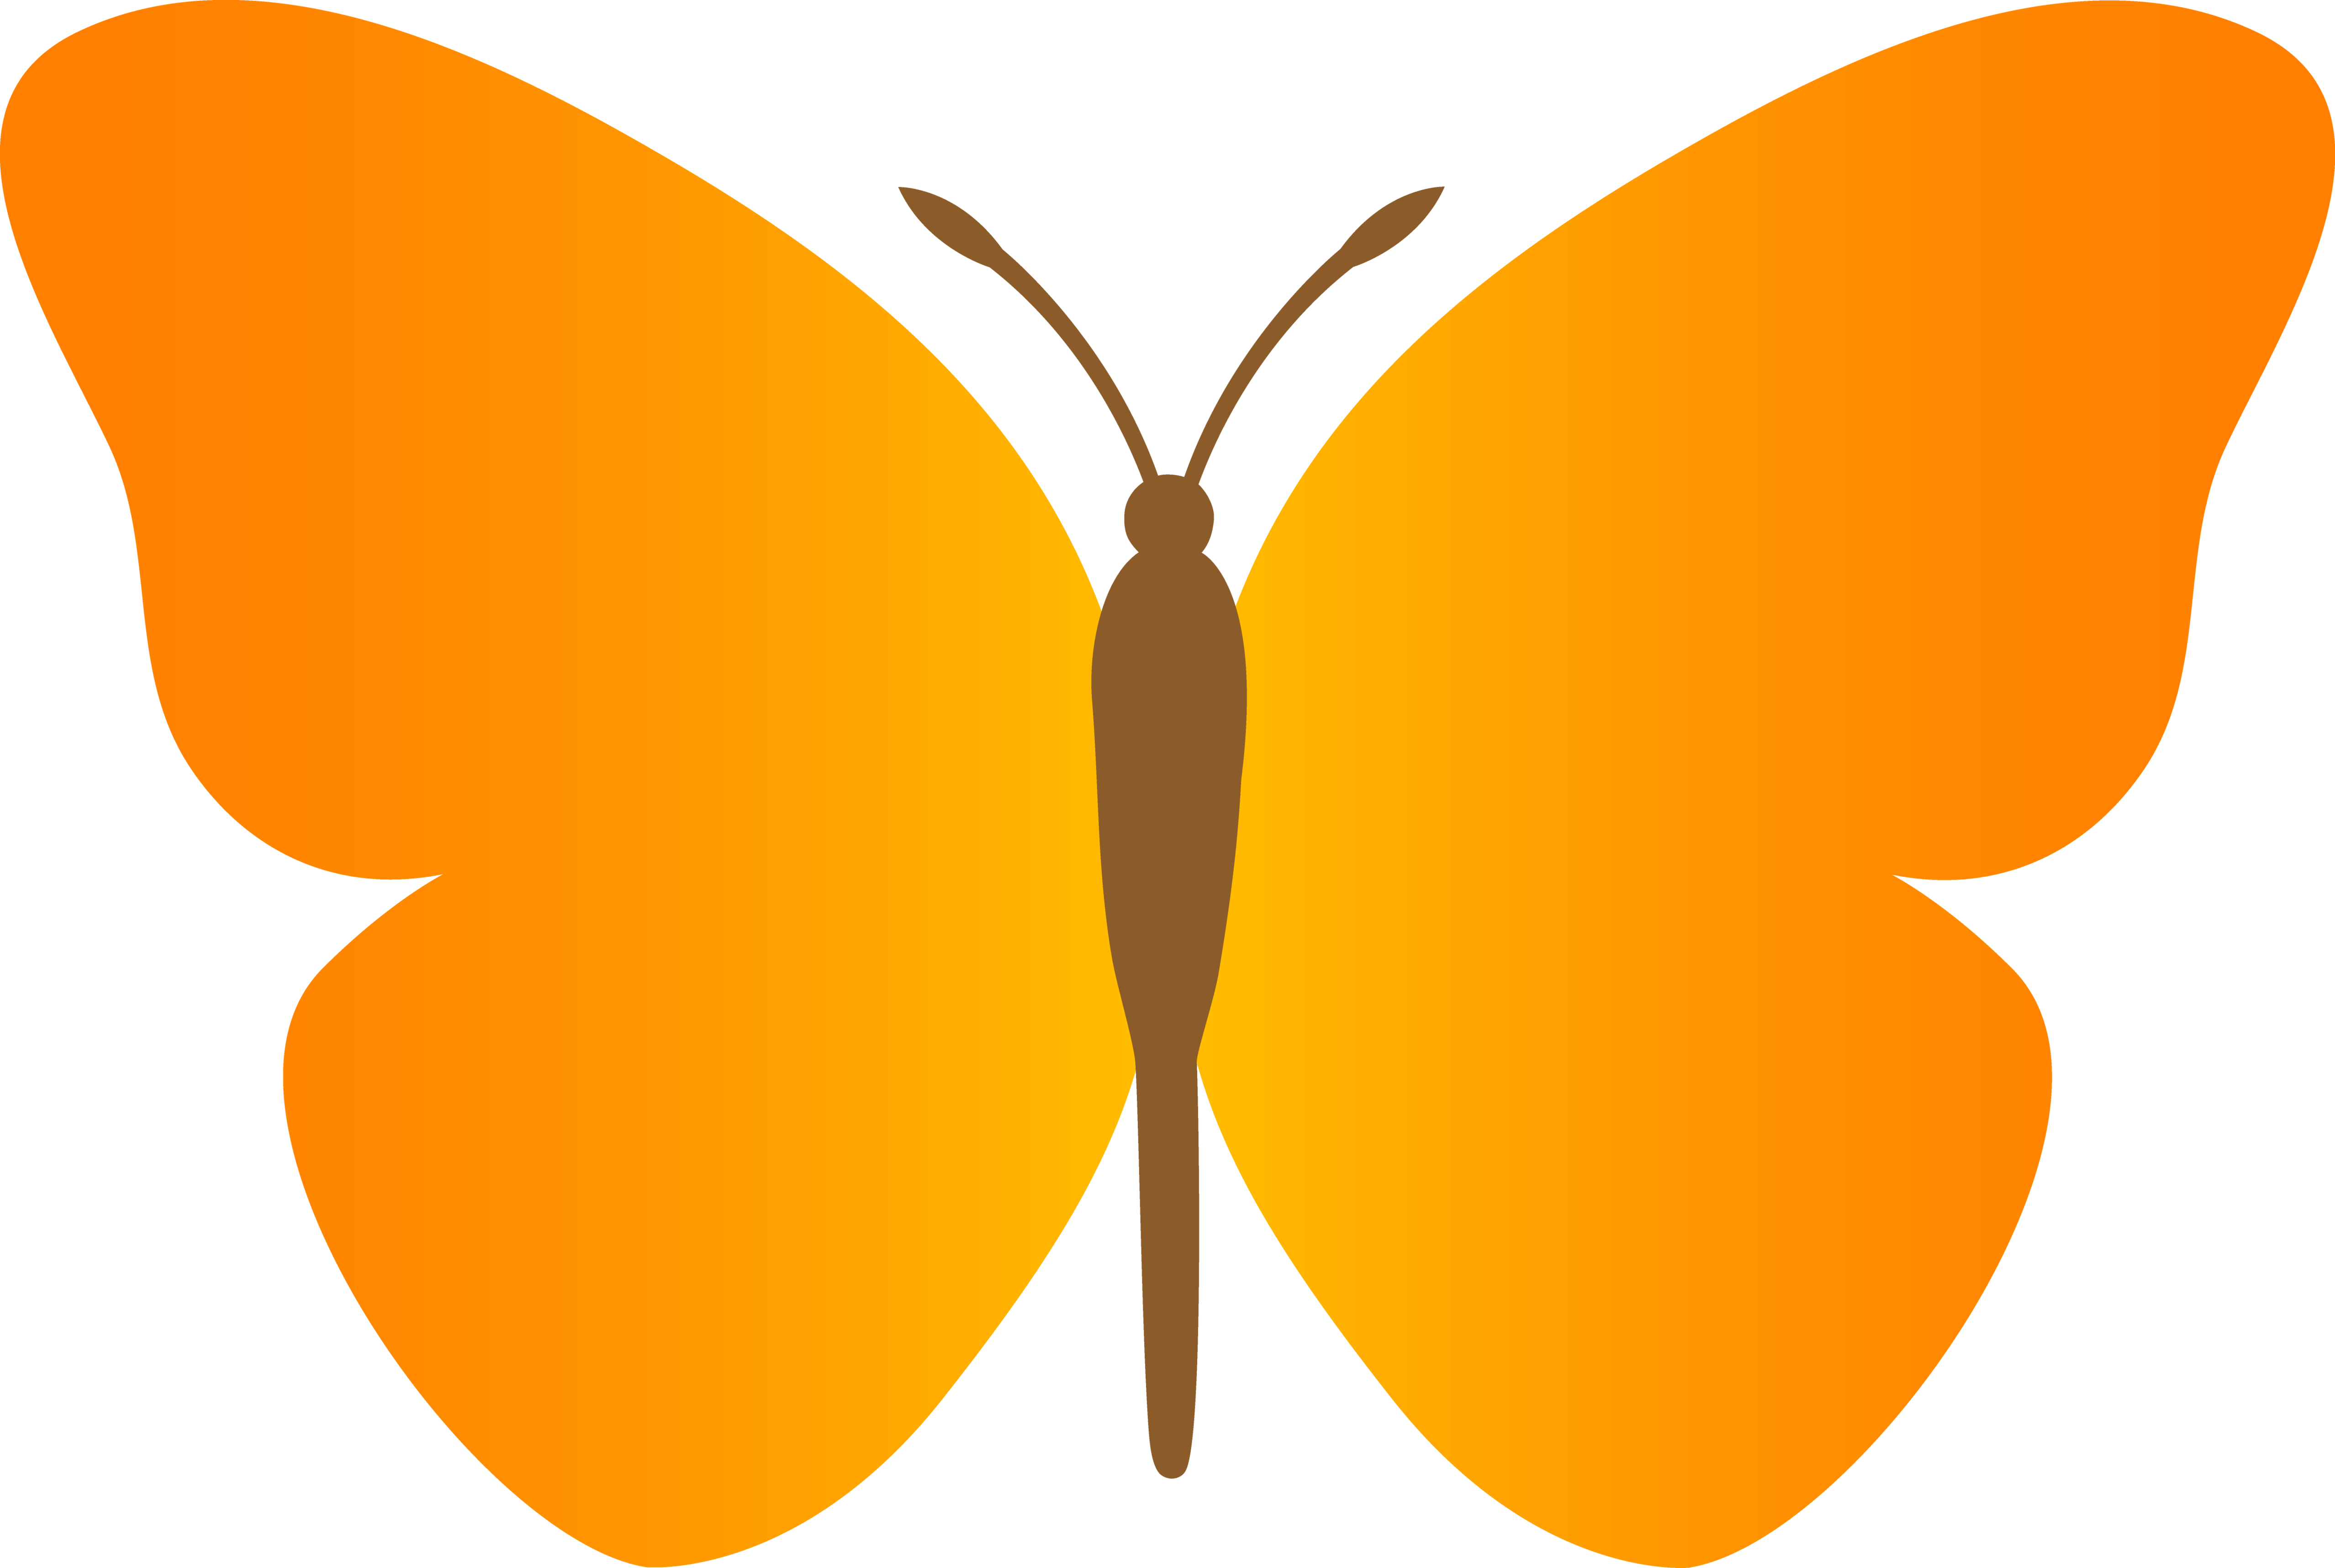 Butterfly clipart #5, Download drawings